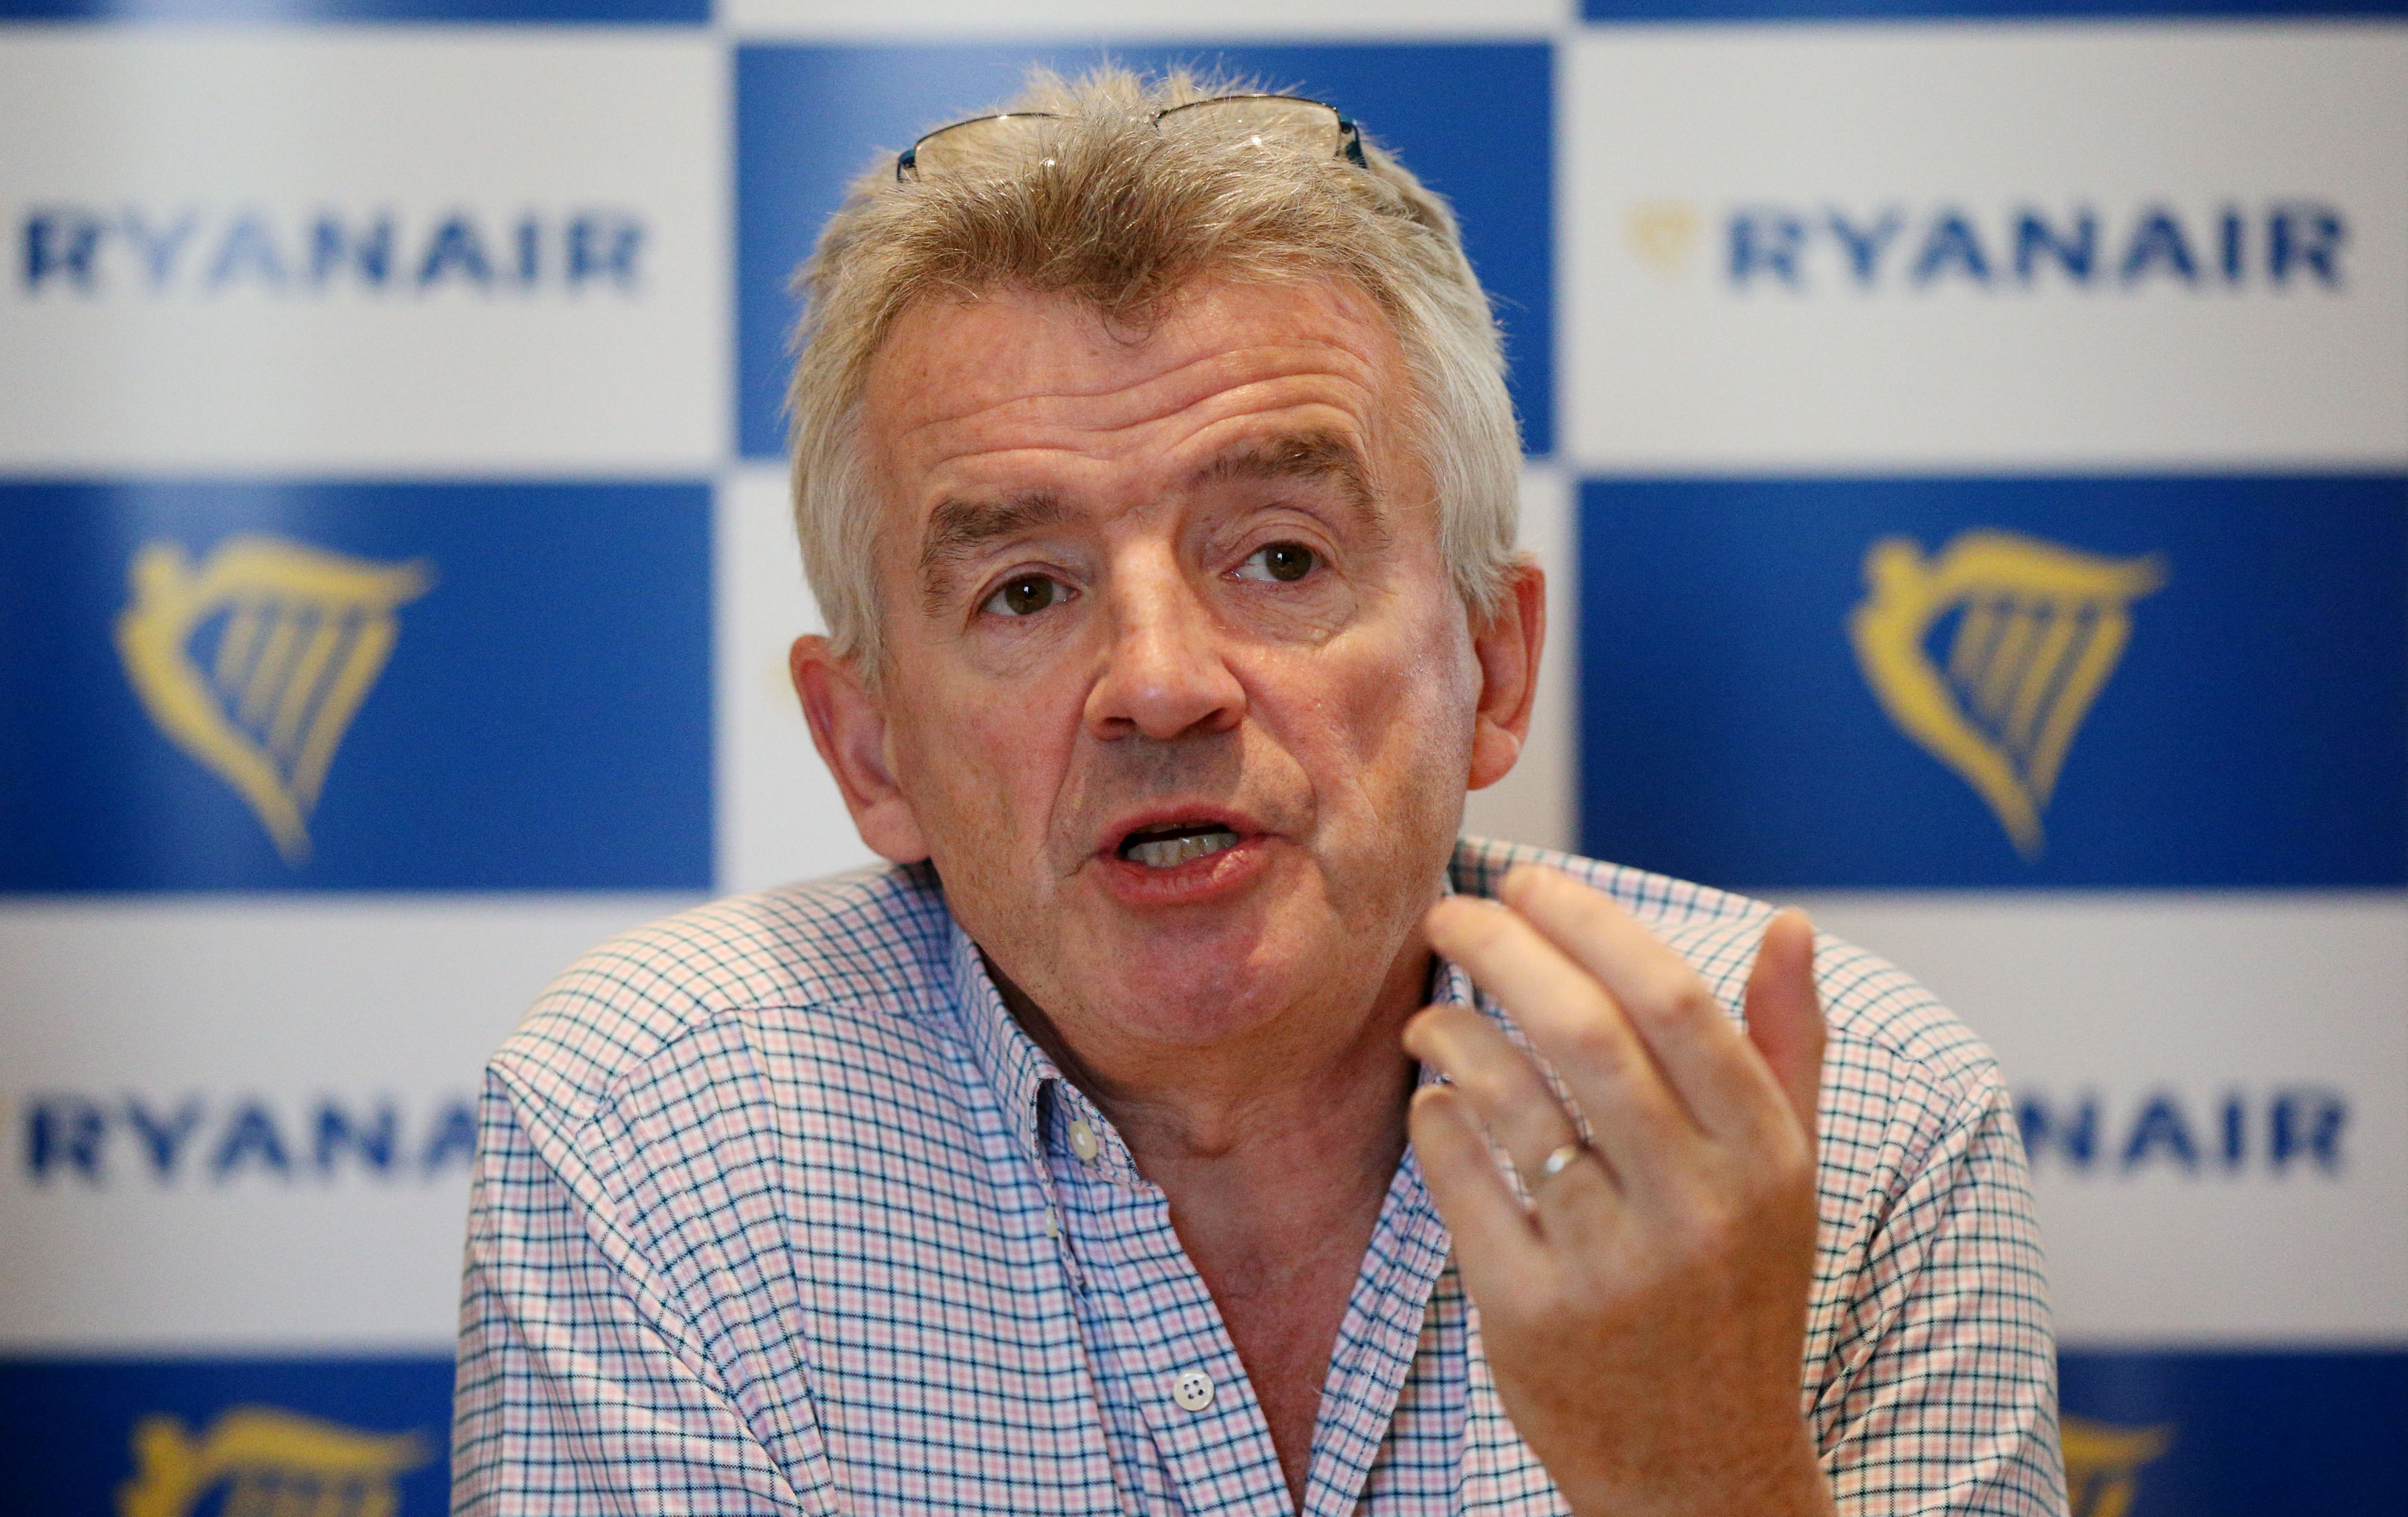 Ryanair's profits crash to a four-year low of £882m